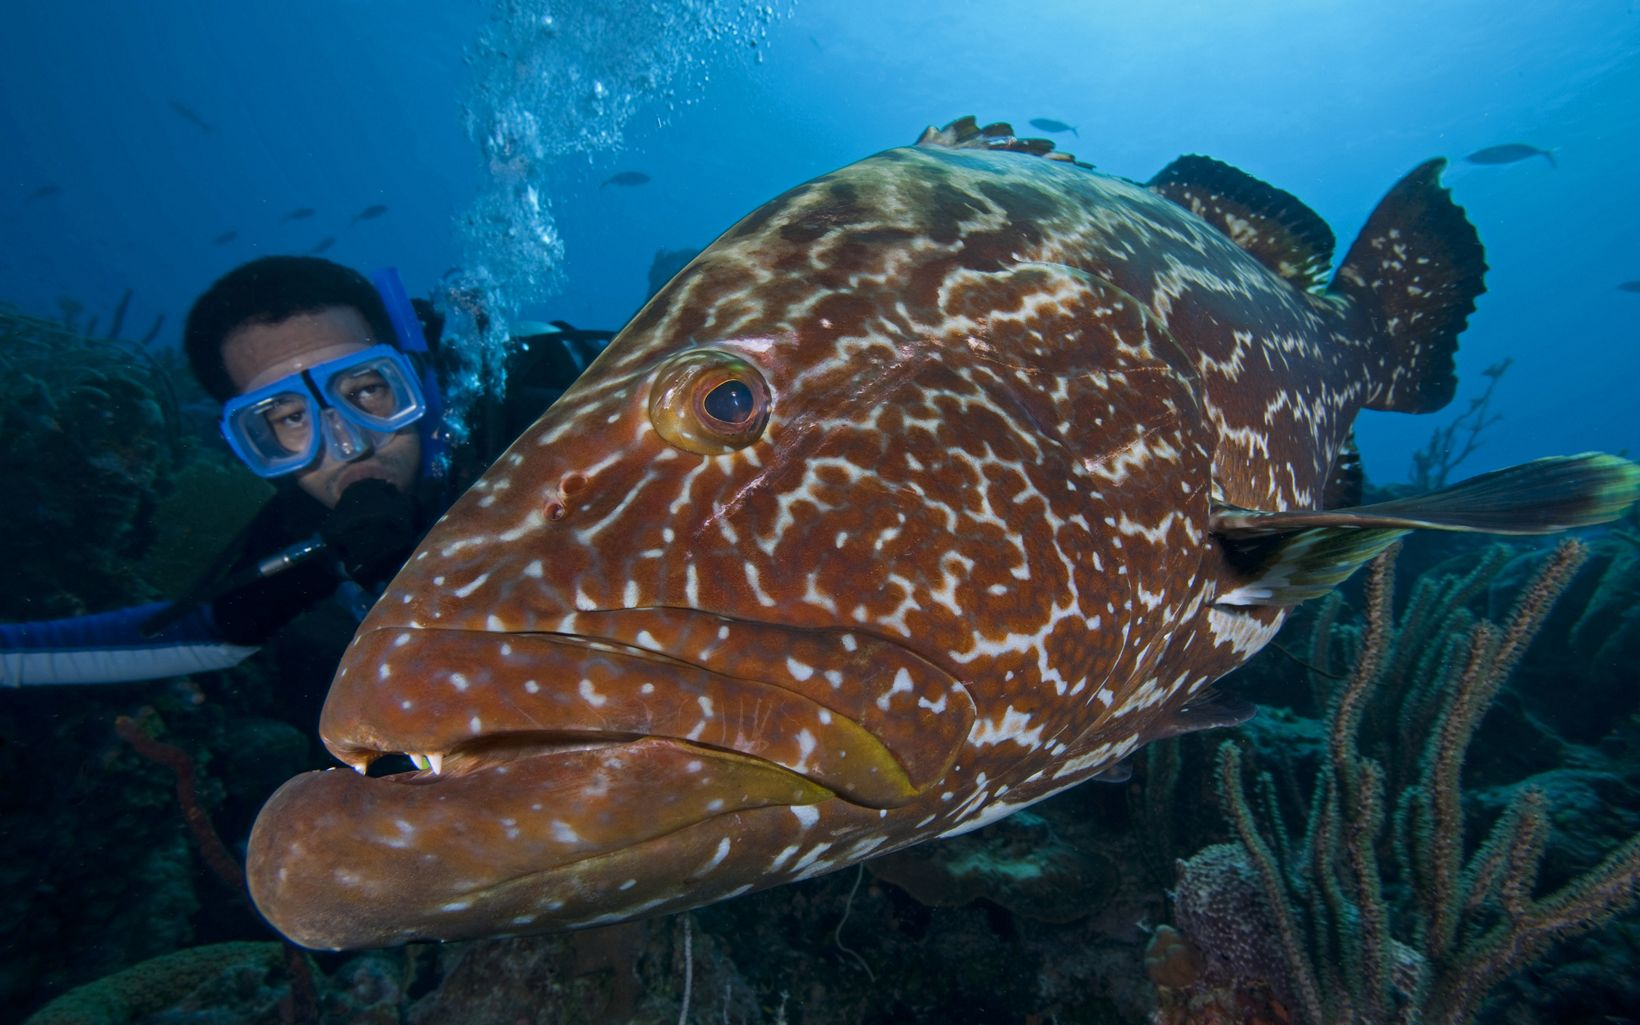 A TNC marine scientist gets up close and personal with a grouper.